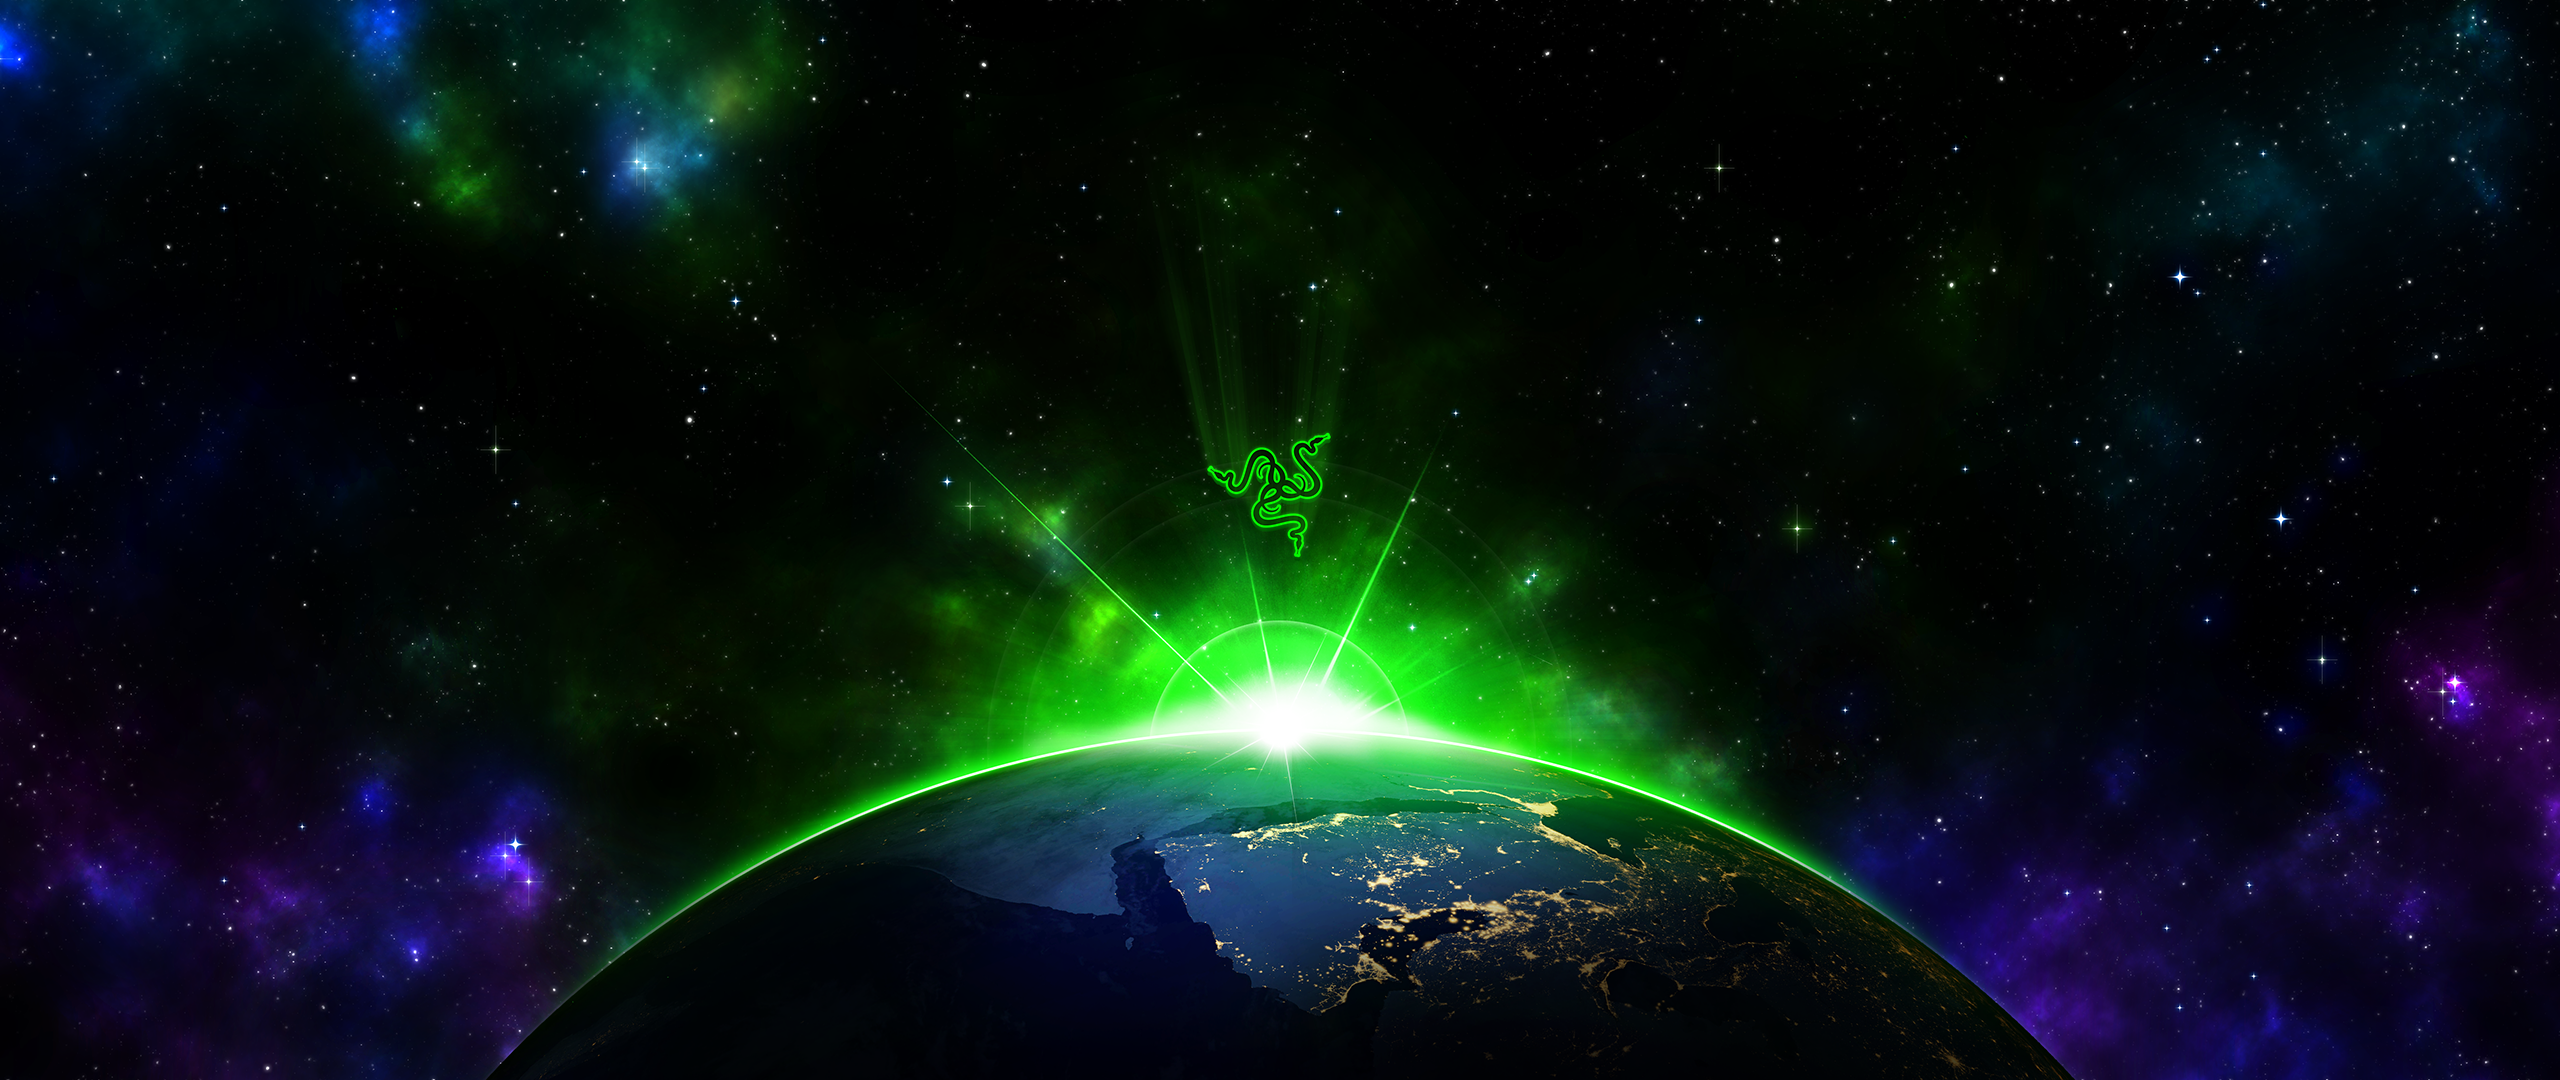 Razer Wallpaper Hd